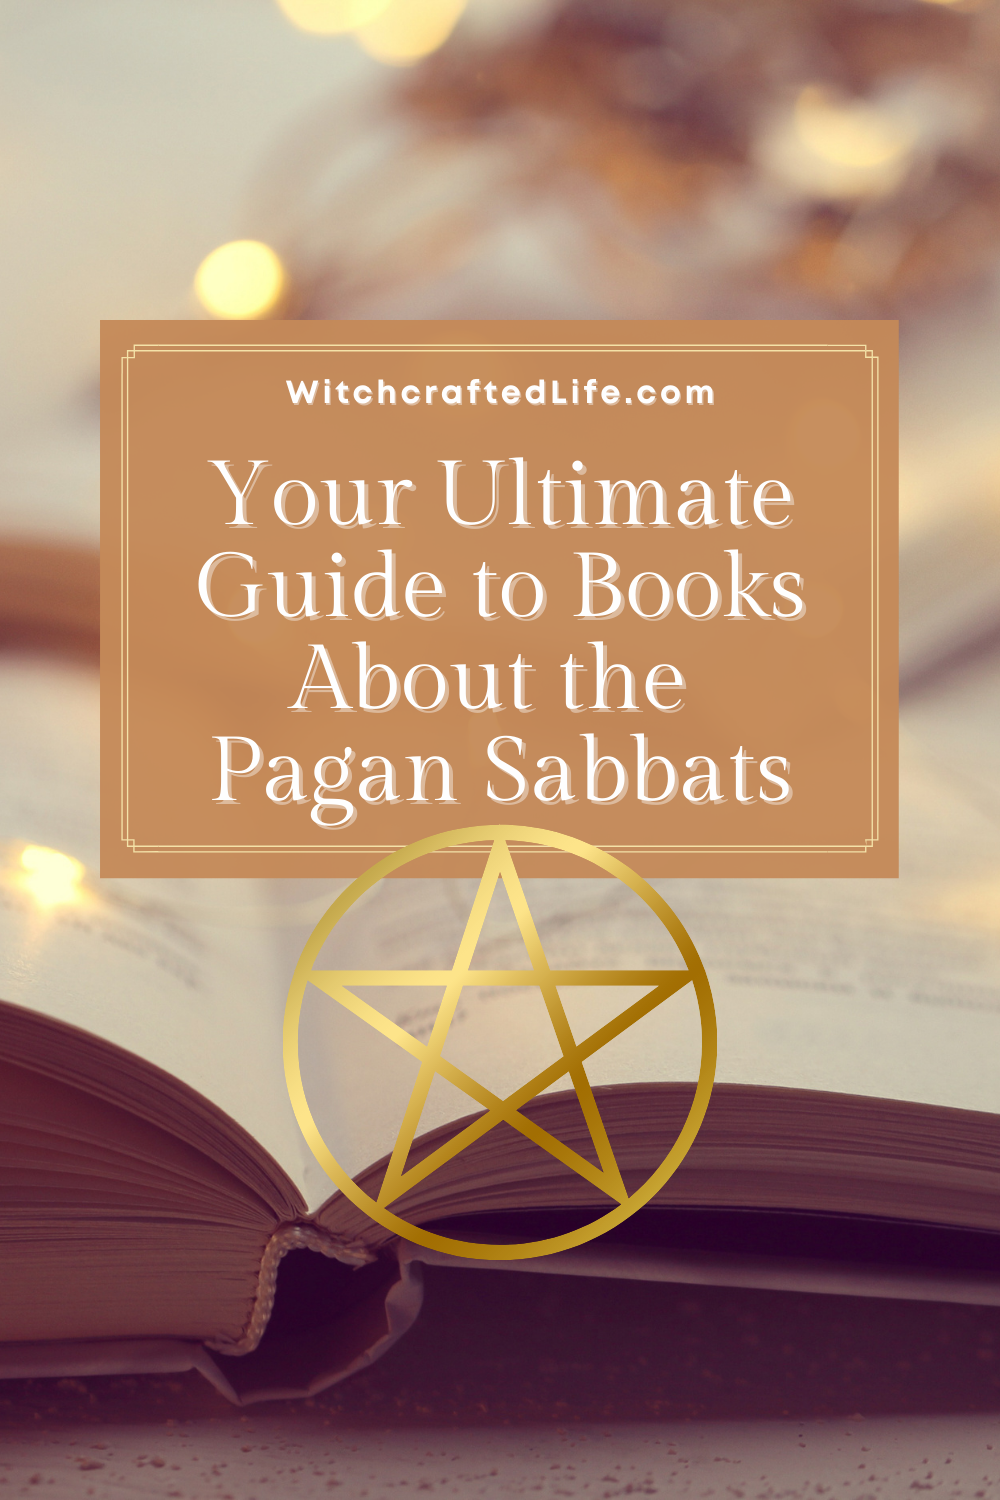 Your Ultimate Guide to Books about the Pagan Sabbats